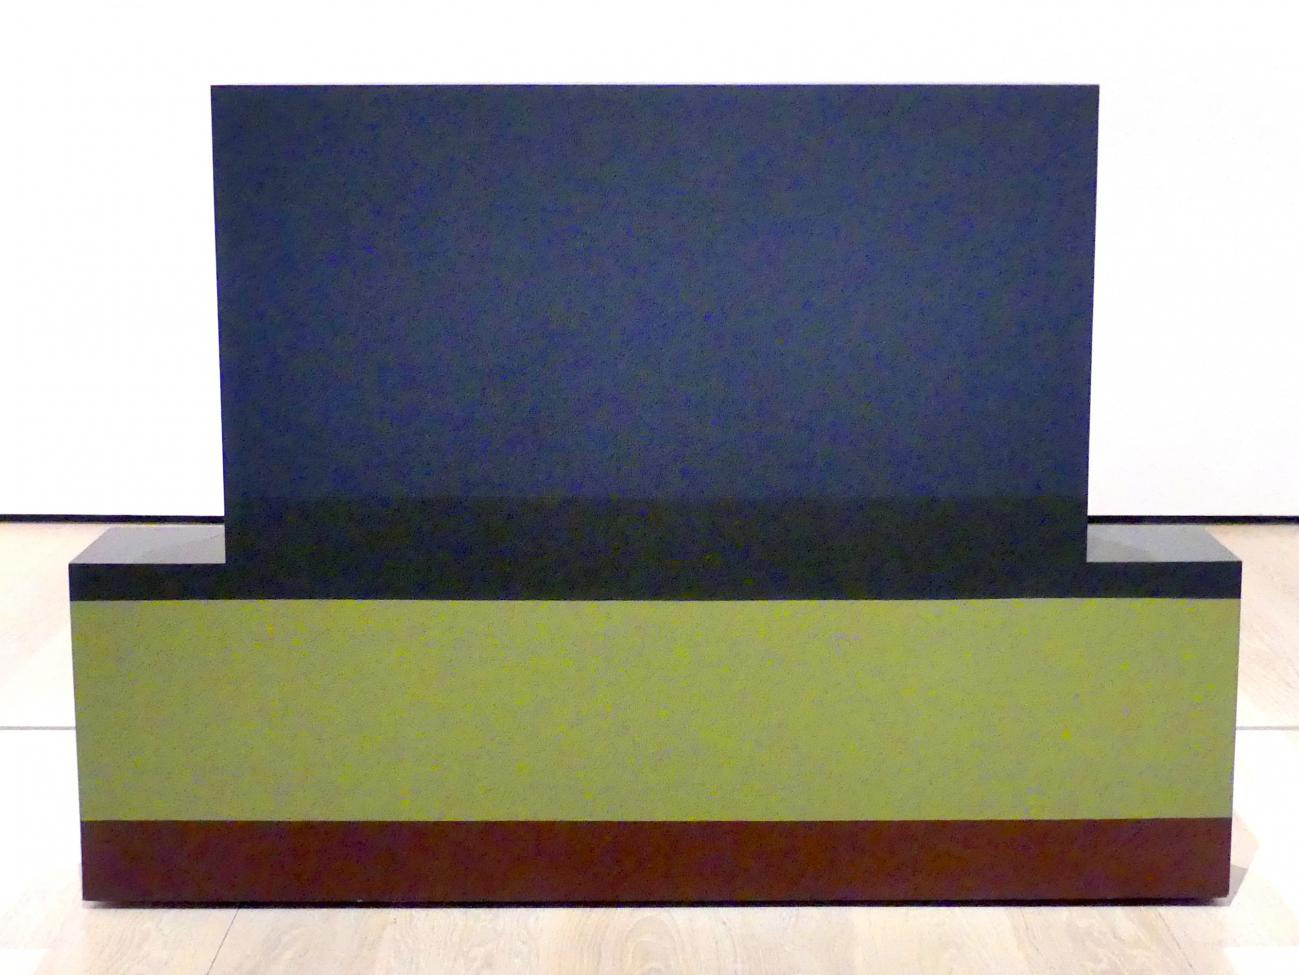 Anne Truitt: Catawba, 1962